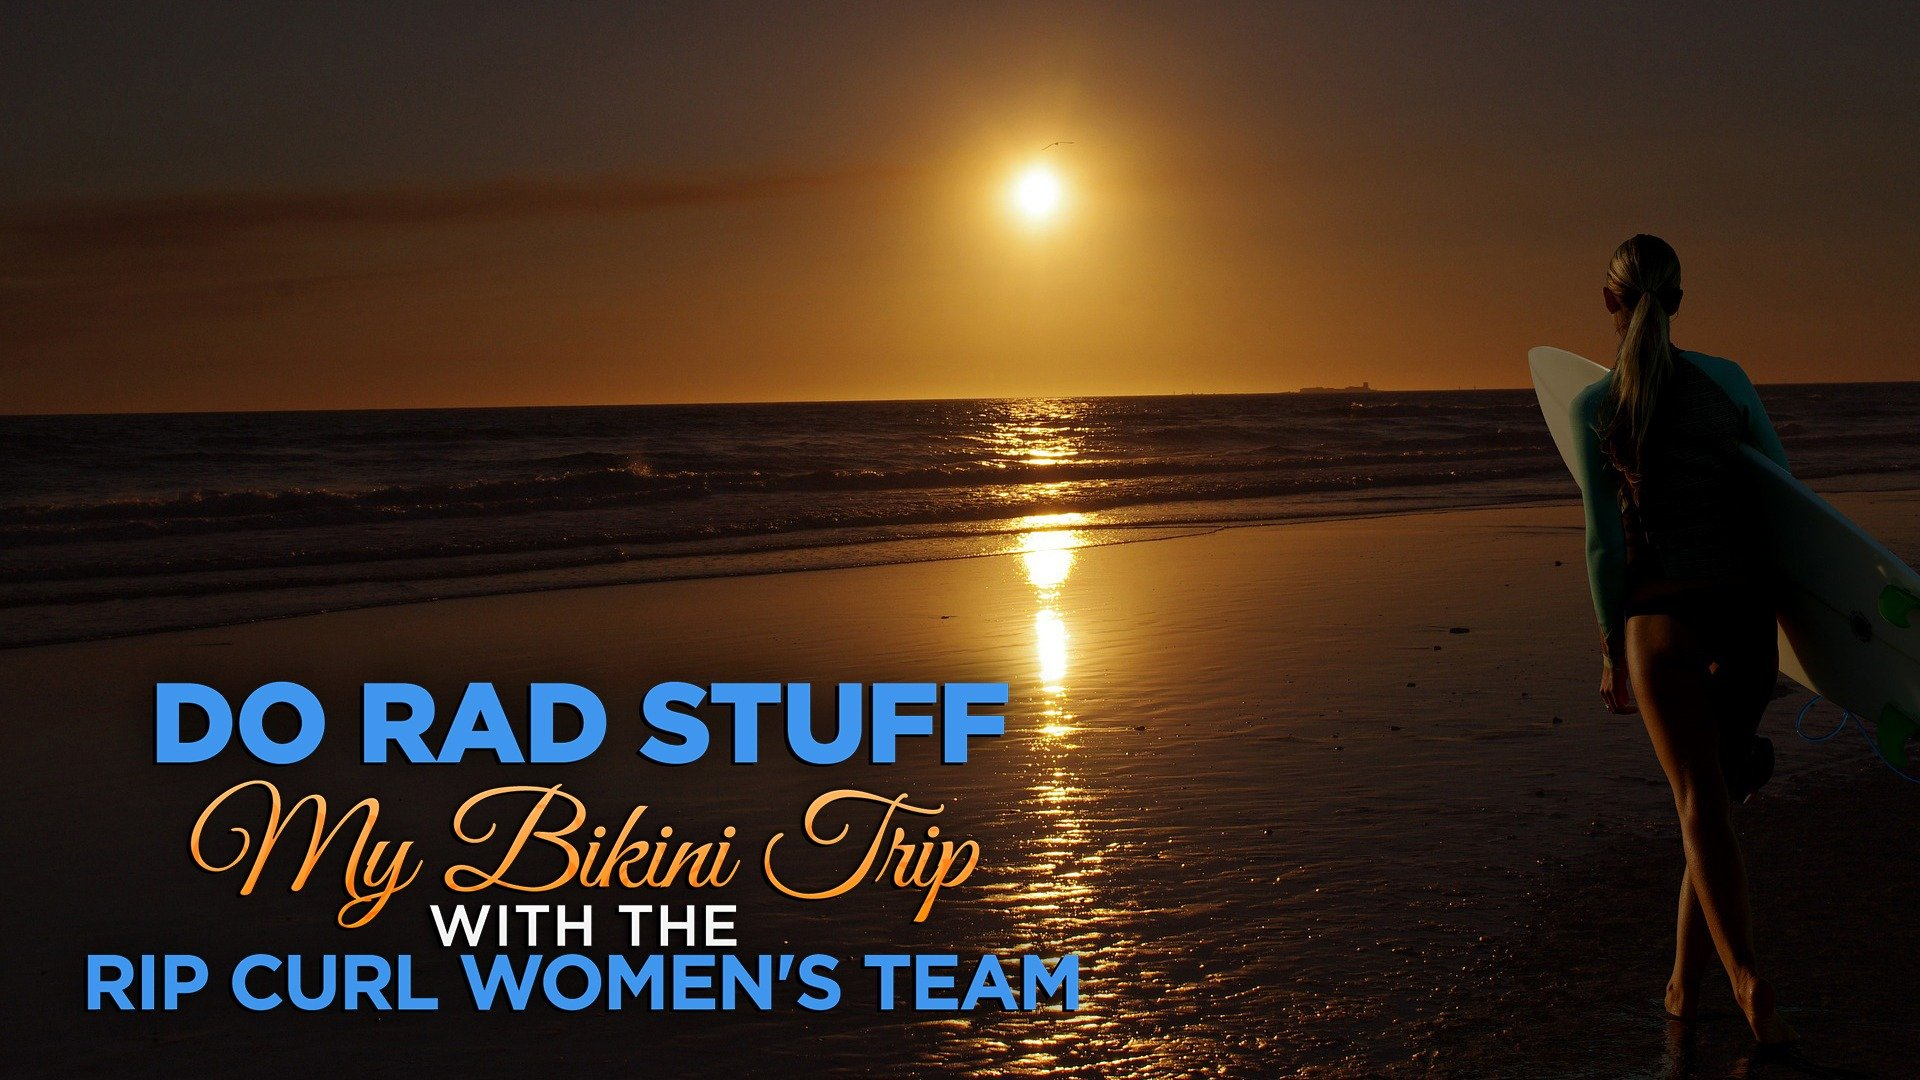 Do Rad Stuff: My Bikini Trip with the Rip Curl Women's Team